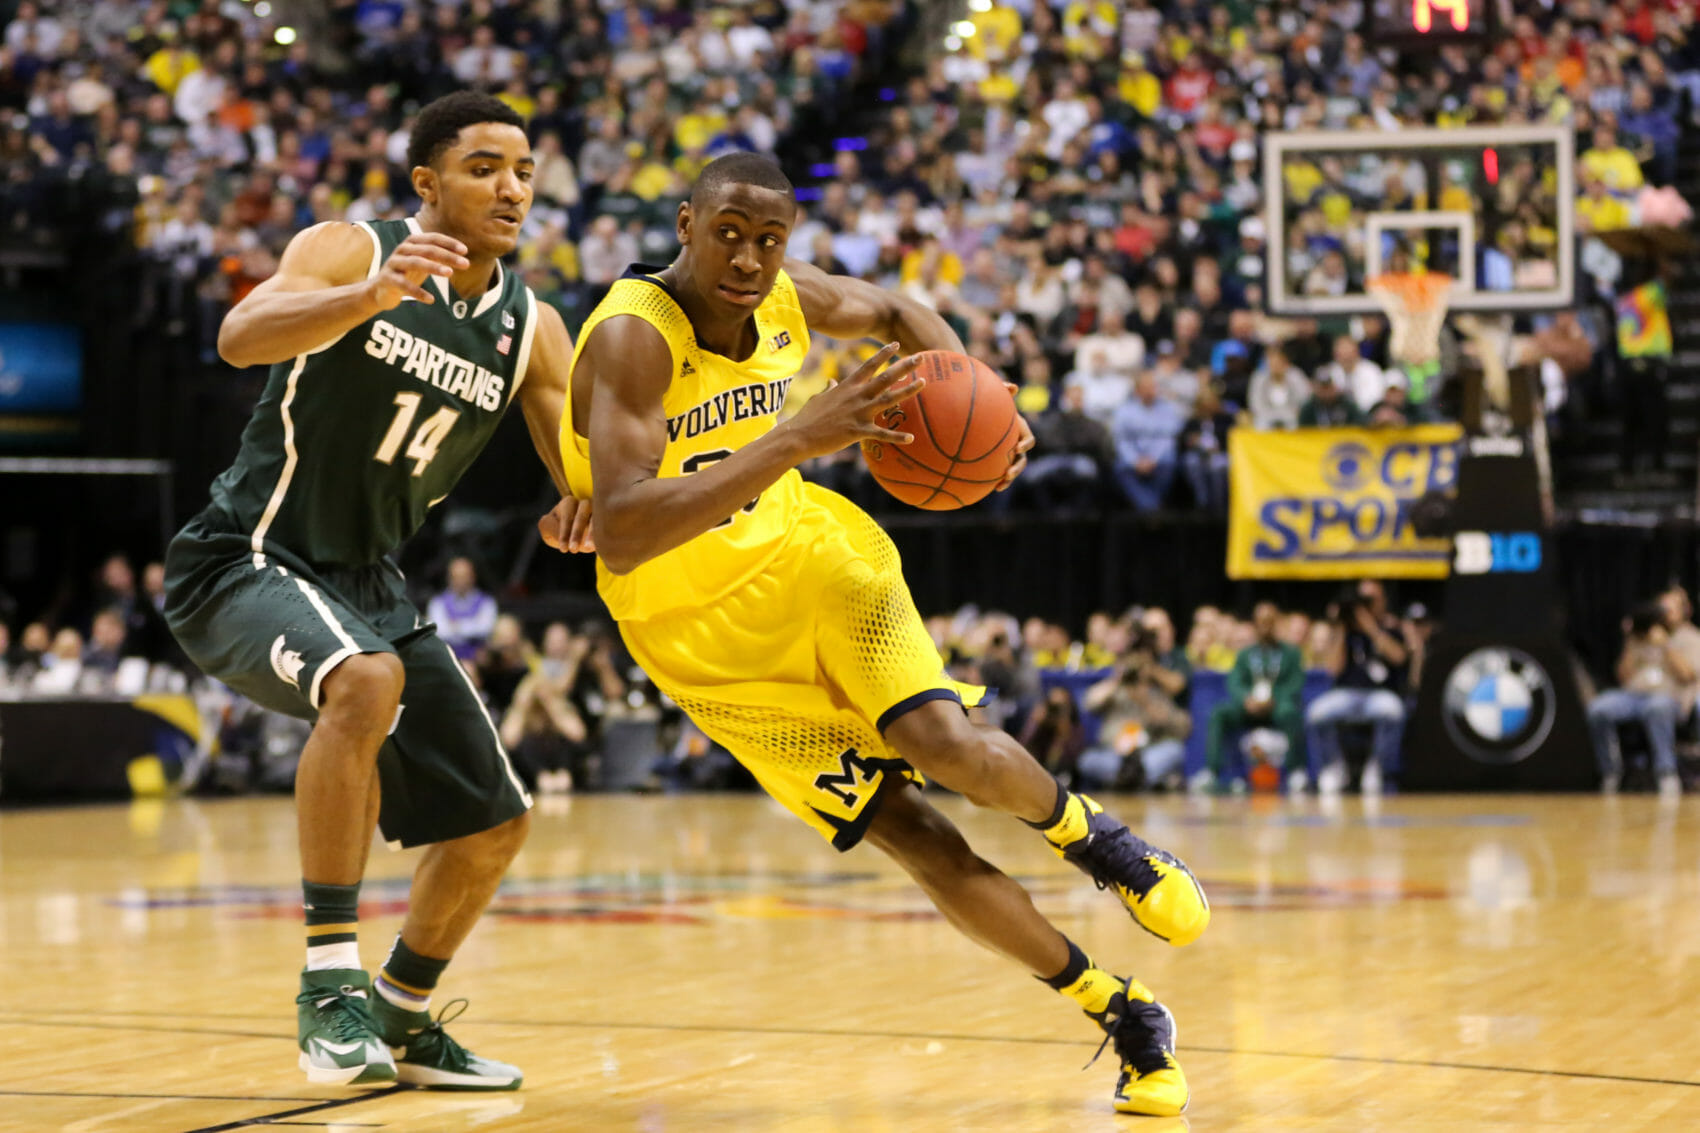 Michigan State 69, Michigan 55-10